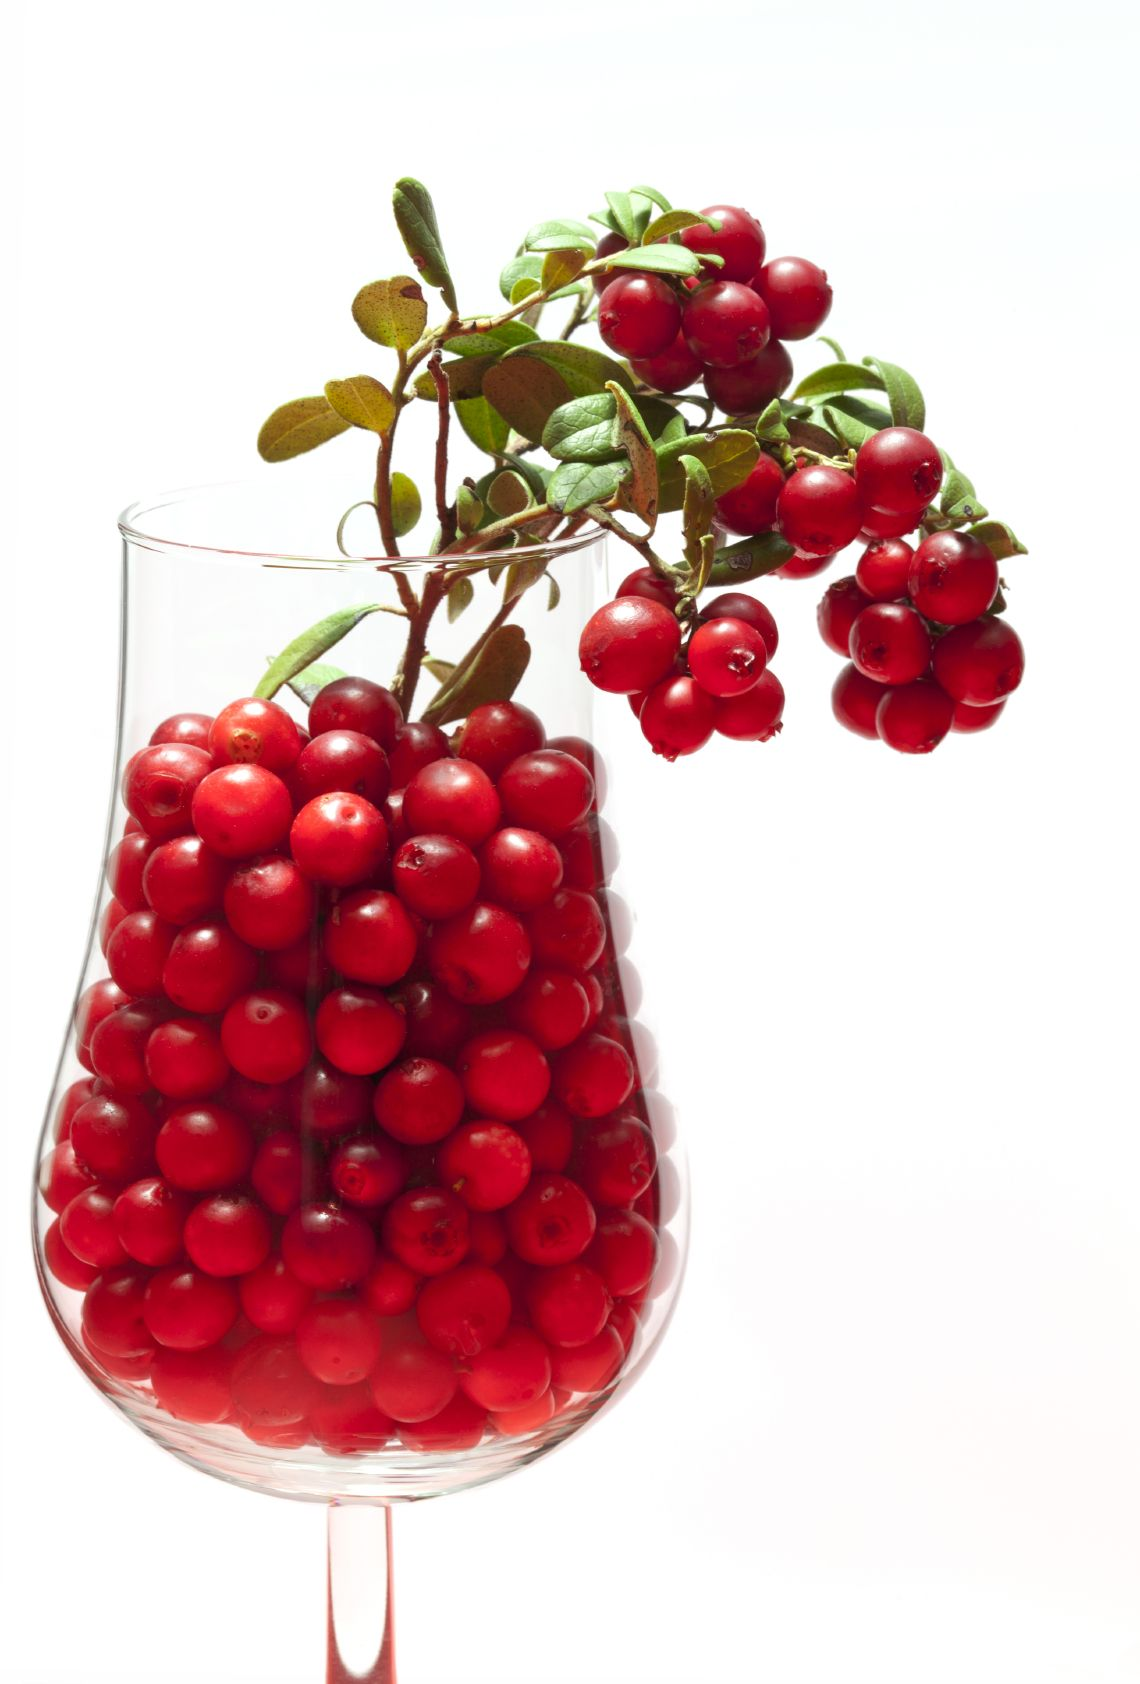 Lingonberries-for-weight-loss